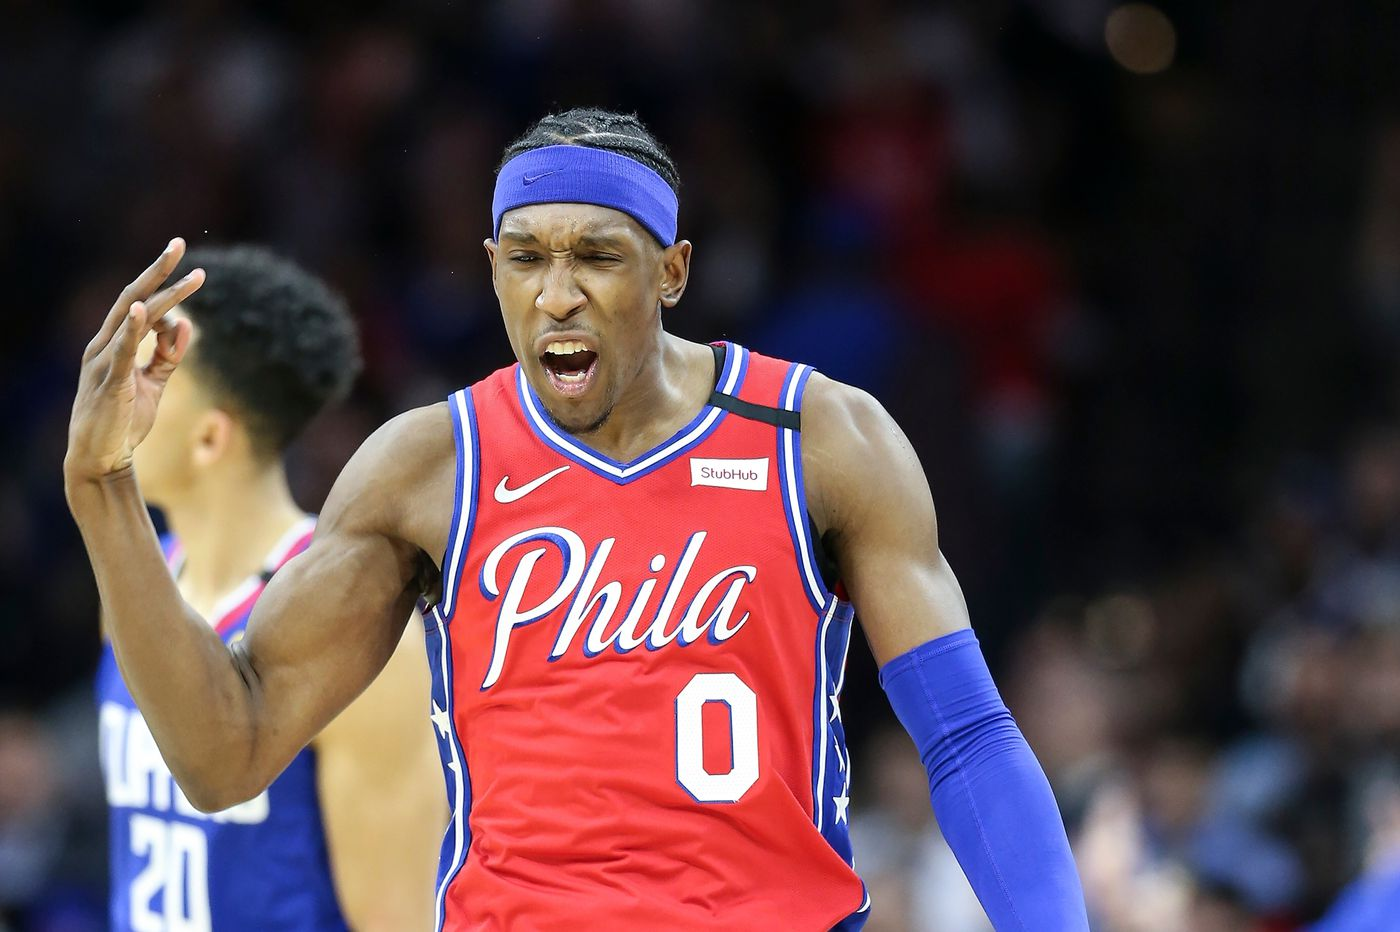 Sixers podcast: Facing Lakers without three starters; Glenn Robinson III's start; predicting road wins